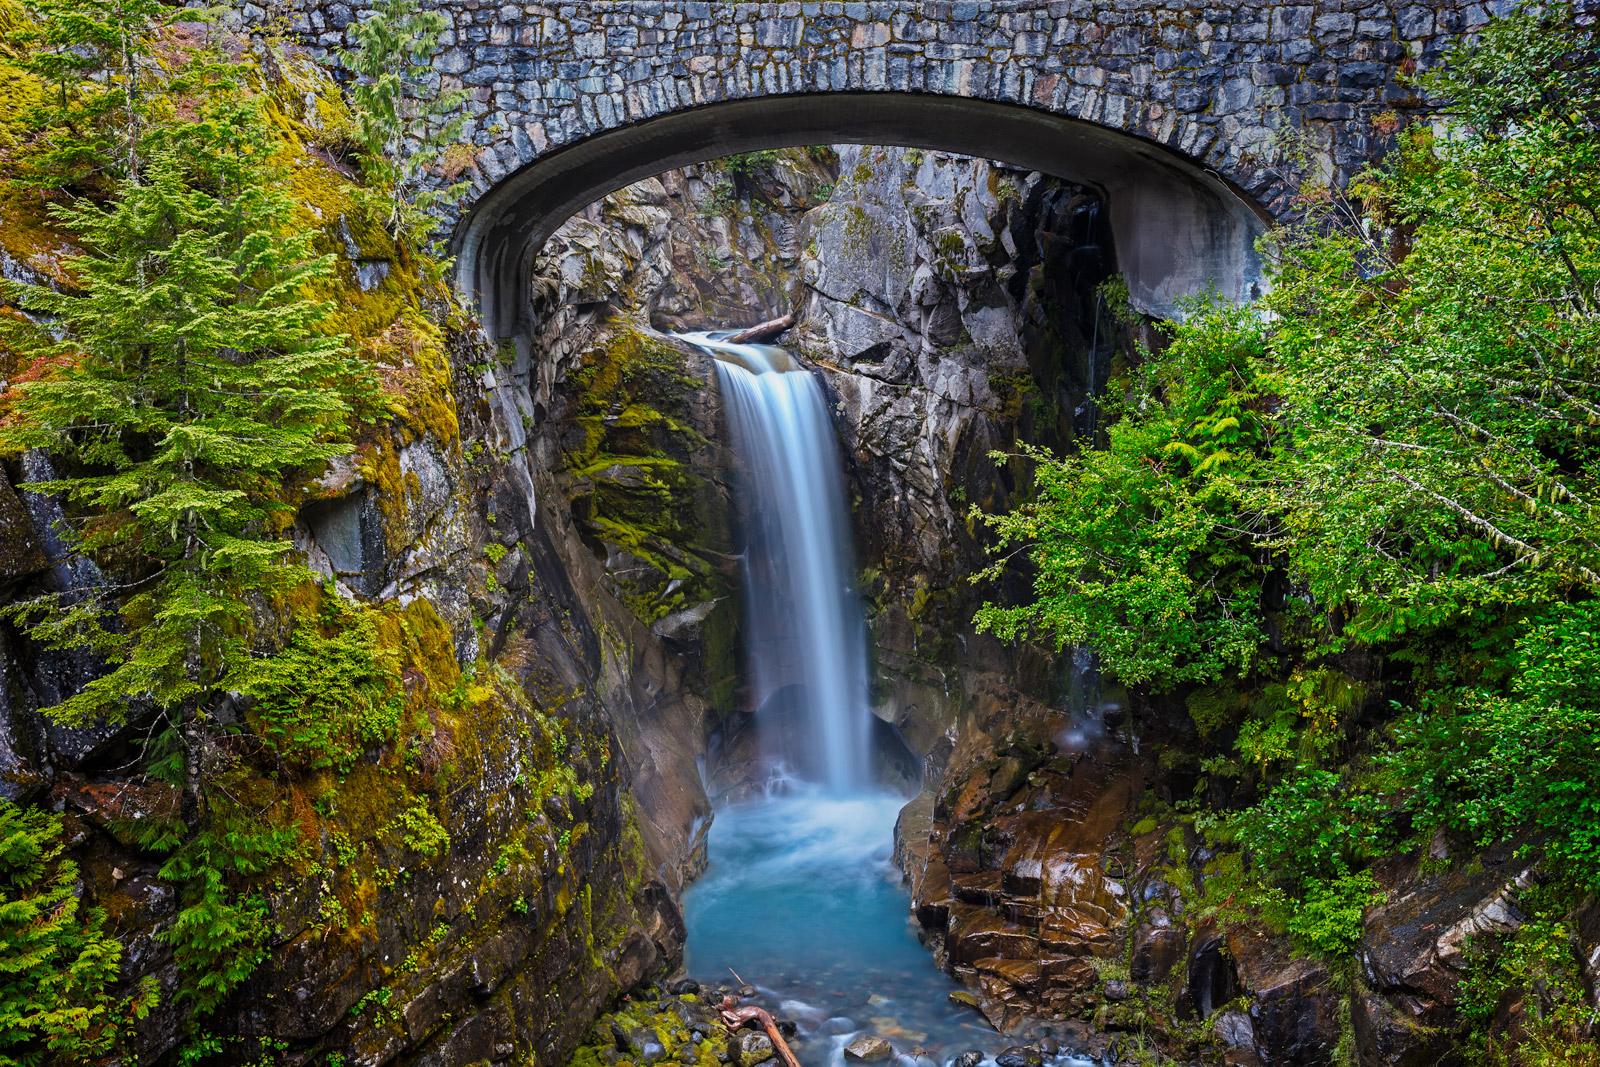 A Limited Edition, Fine Art photograph of the beautiful Christine Falls with a brick overpass and aqua river below at Mount Rainier...